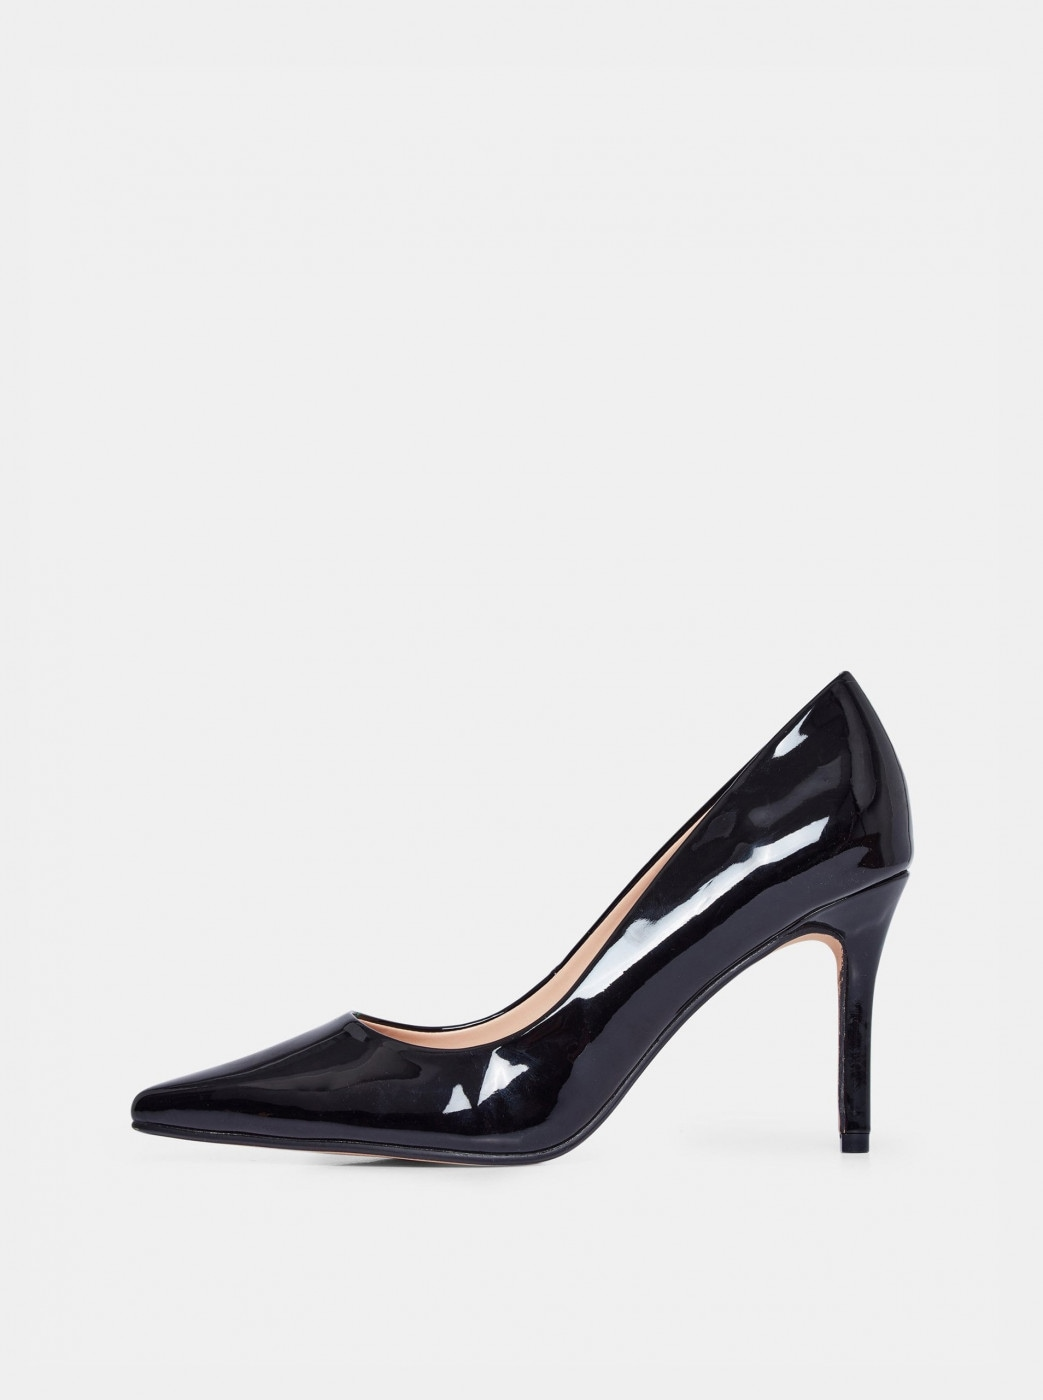 Dorothy Perkins Black Shiny Boat